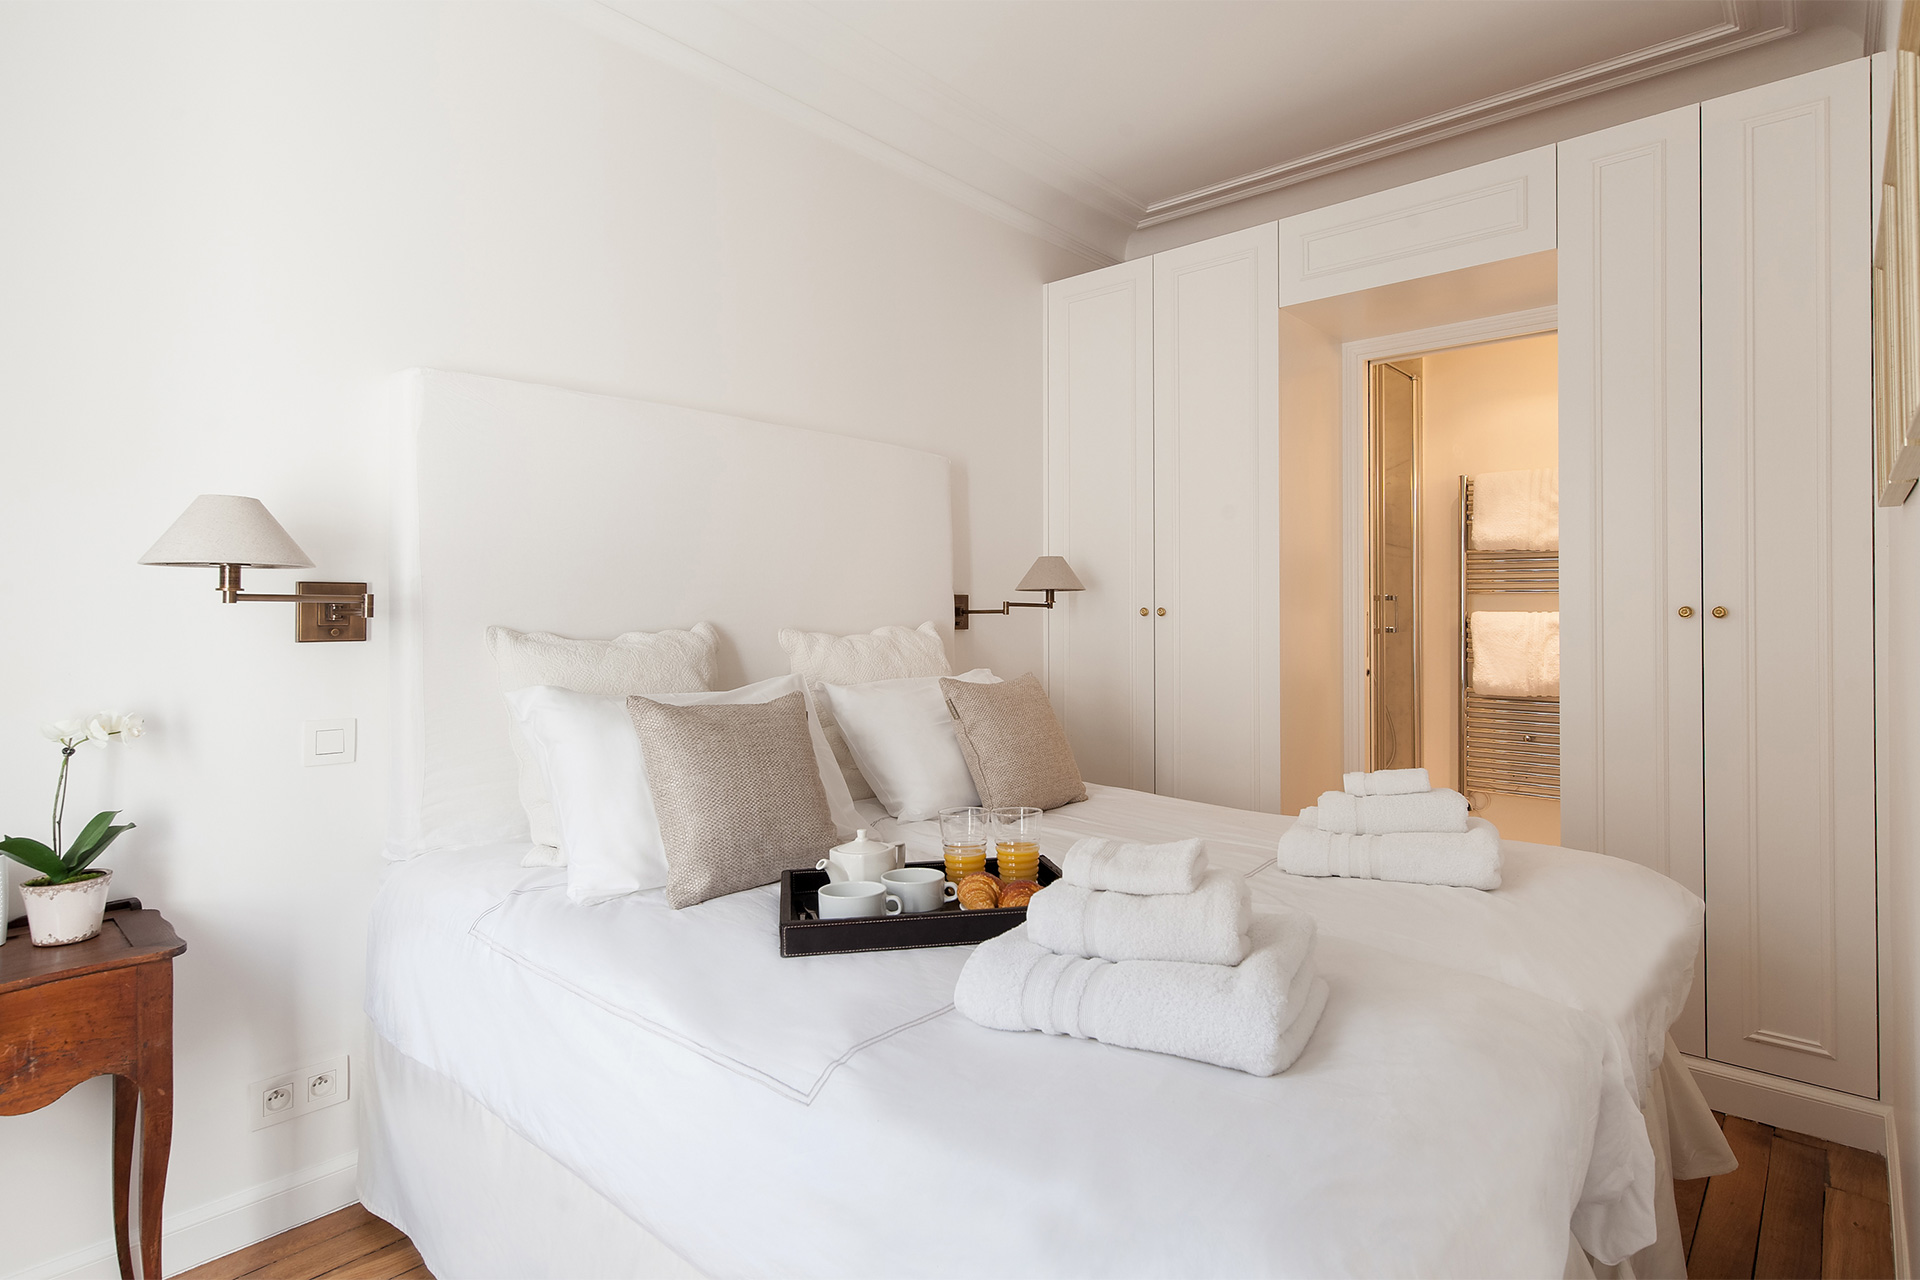 Second bedroom with two single beds in the Montagny vacation rental offered by Paris Perfect